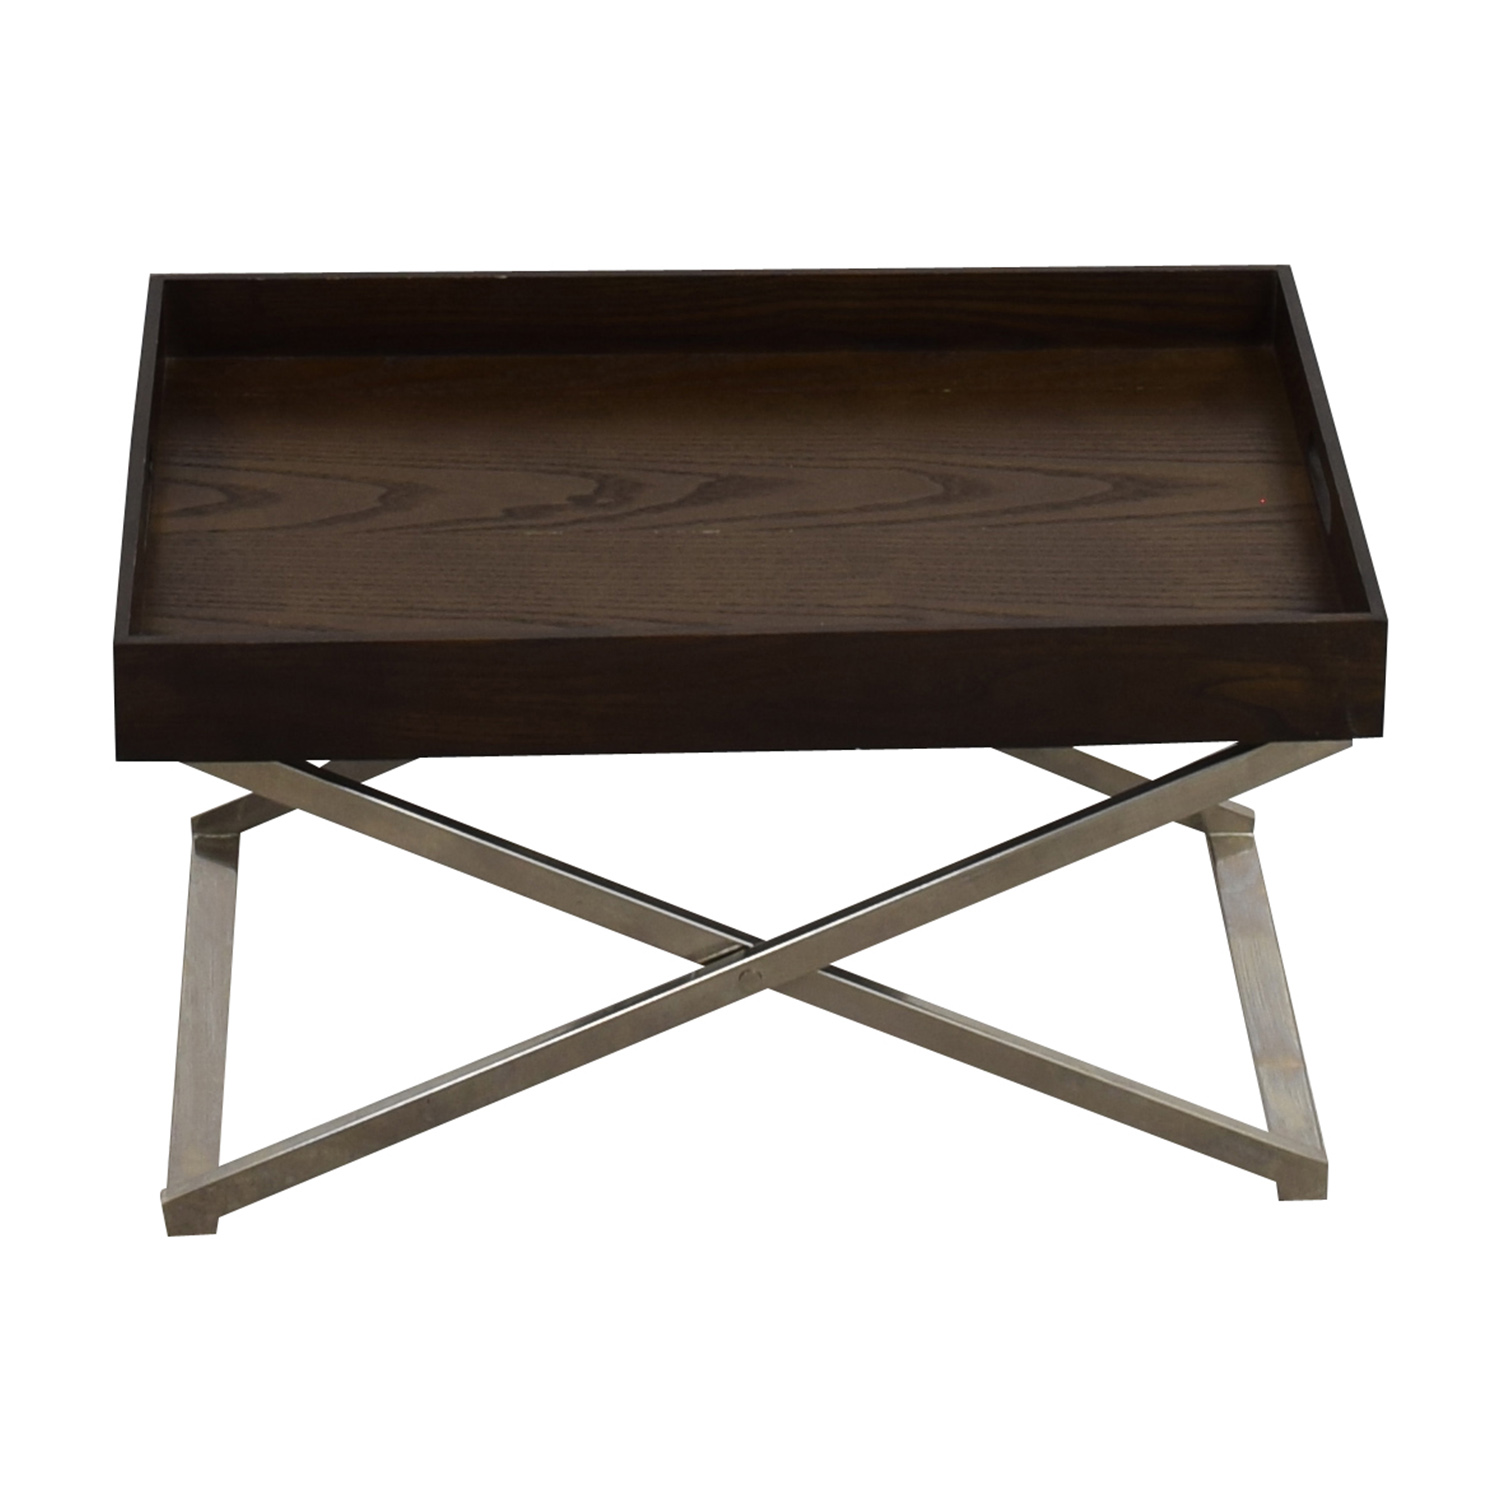 OFF West Elm West Elm Collapsible Coffee Table Tables